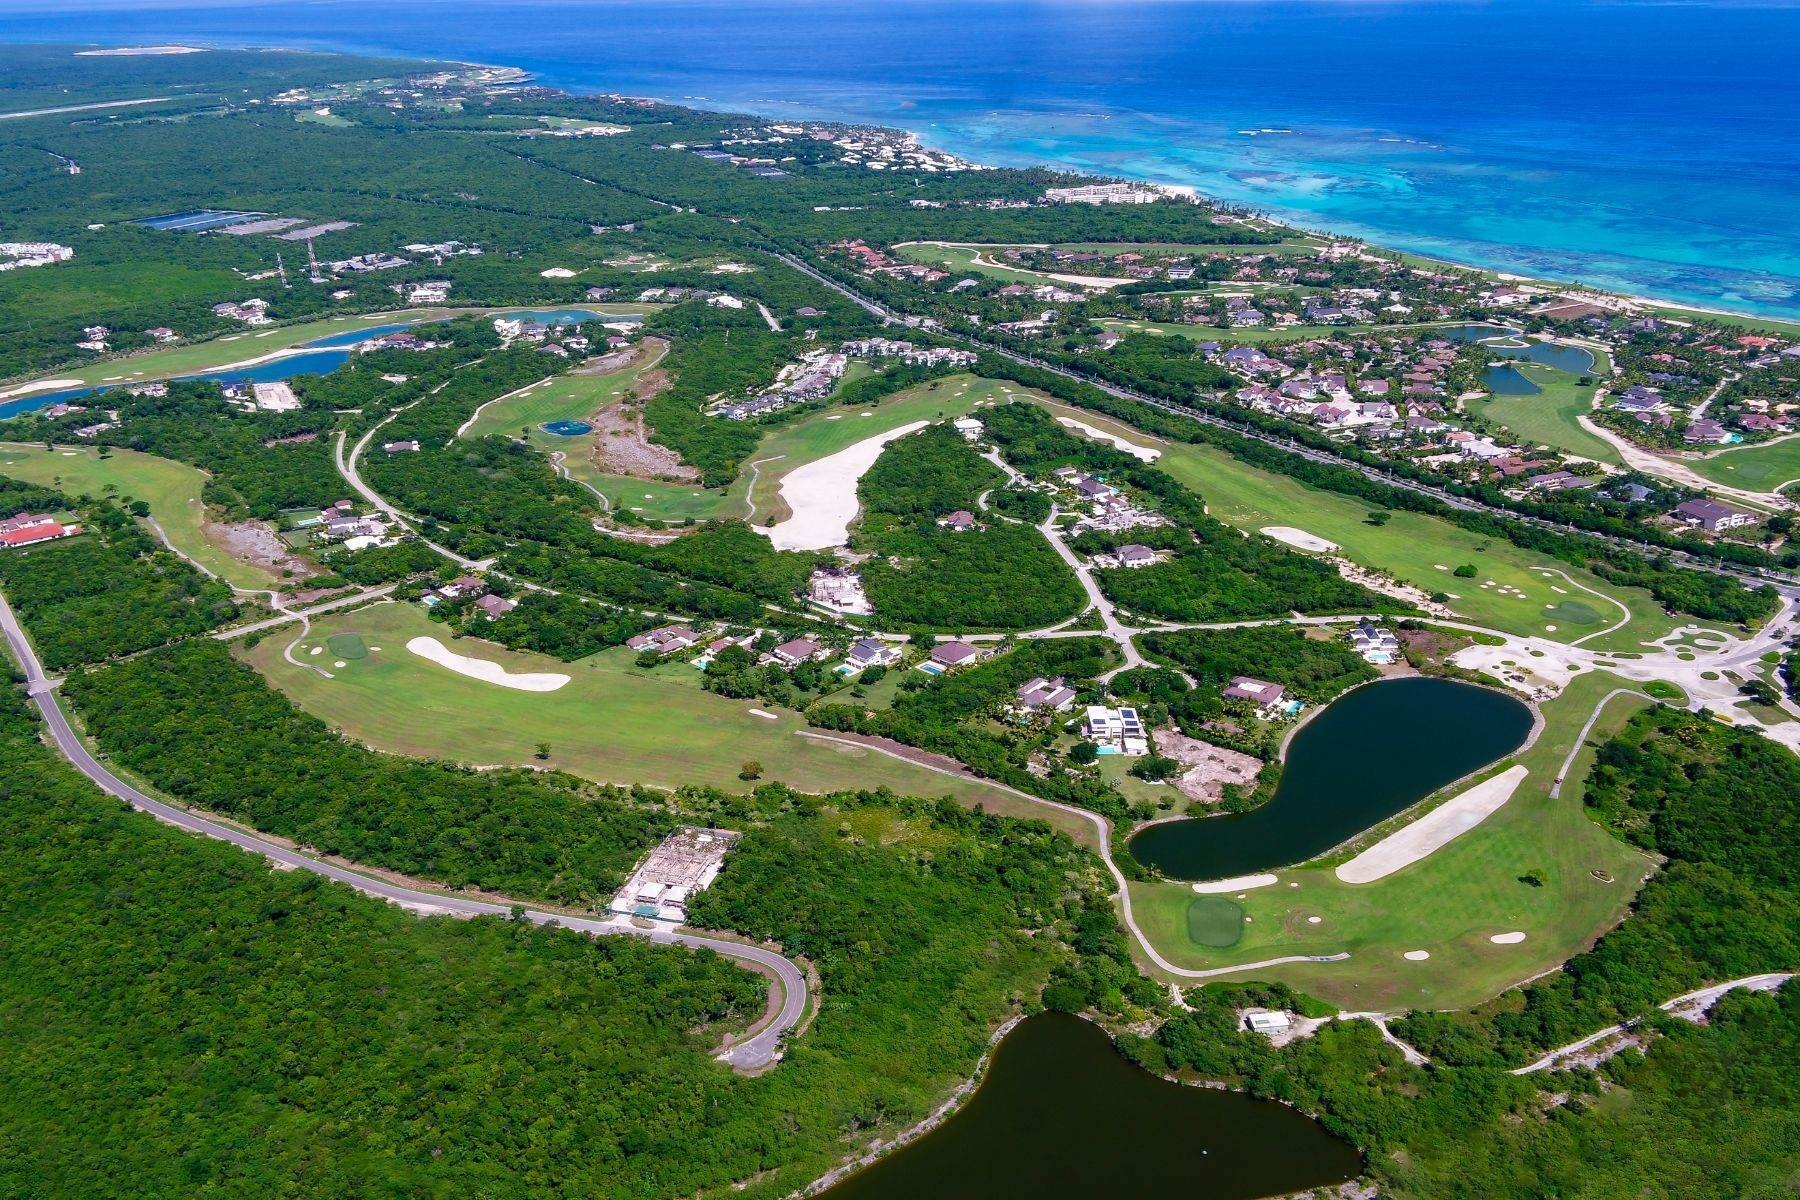 Terrain pour l Vente à Hacienda # C-28 – East-Facing Golf View Parcel close to the Beach Hacienda # C-28, Punta Cana Resort Punta Cana, La Altagracia 23000 République Dominicaine